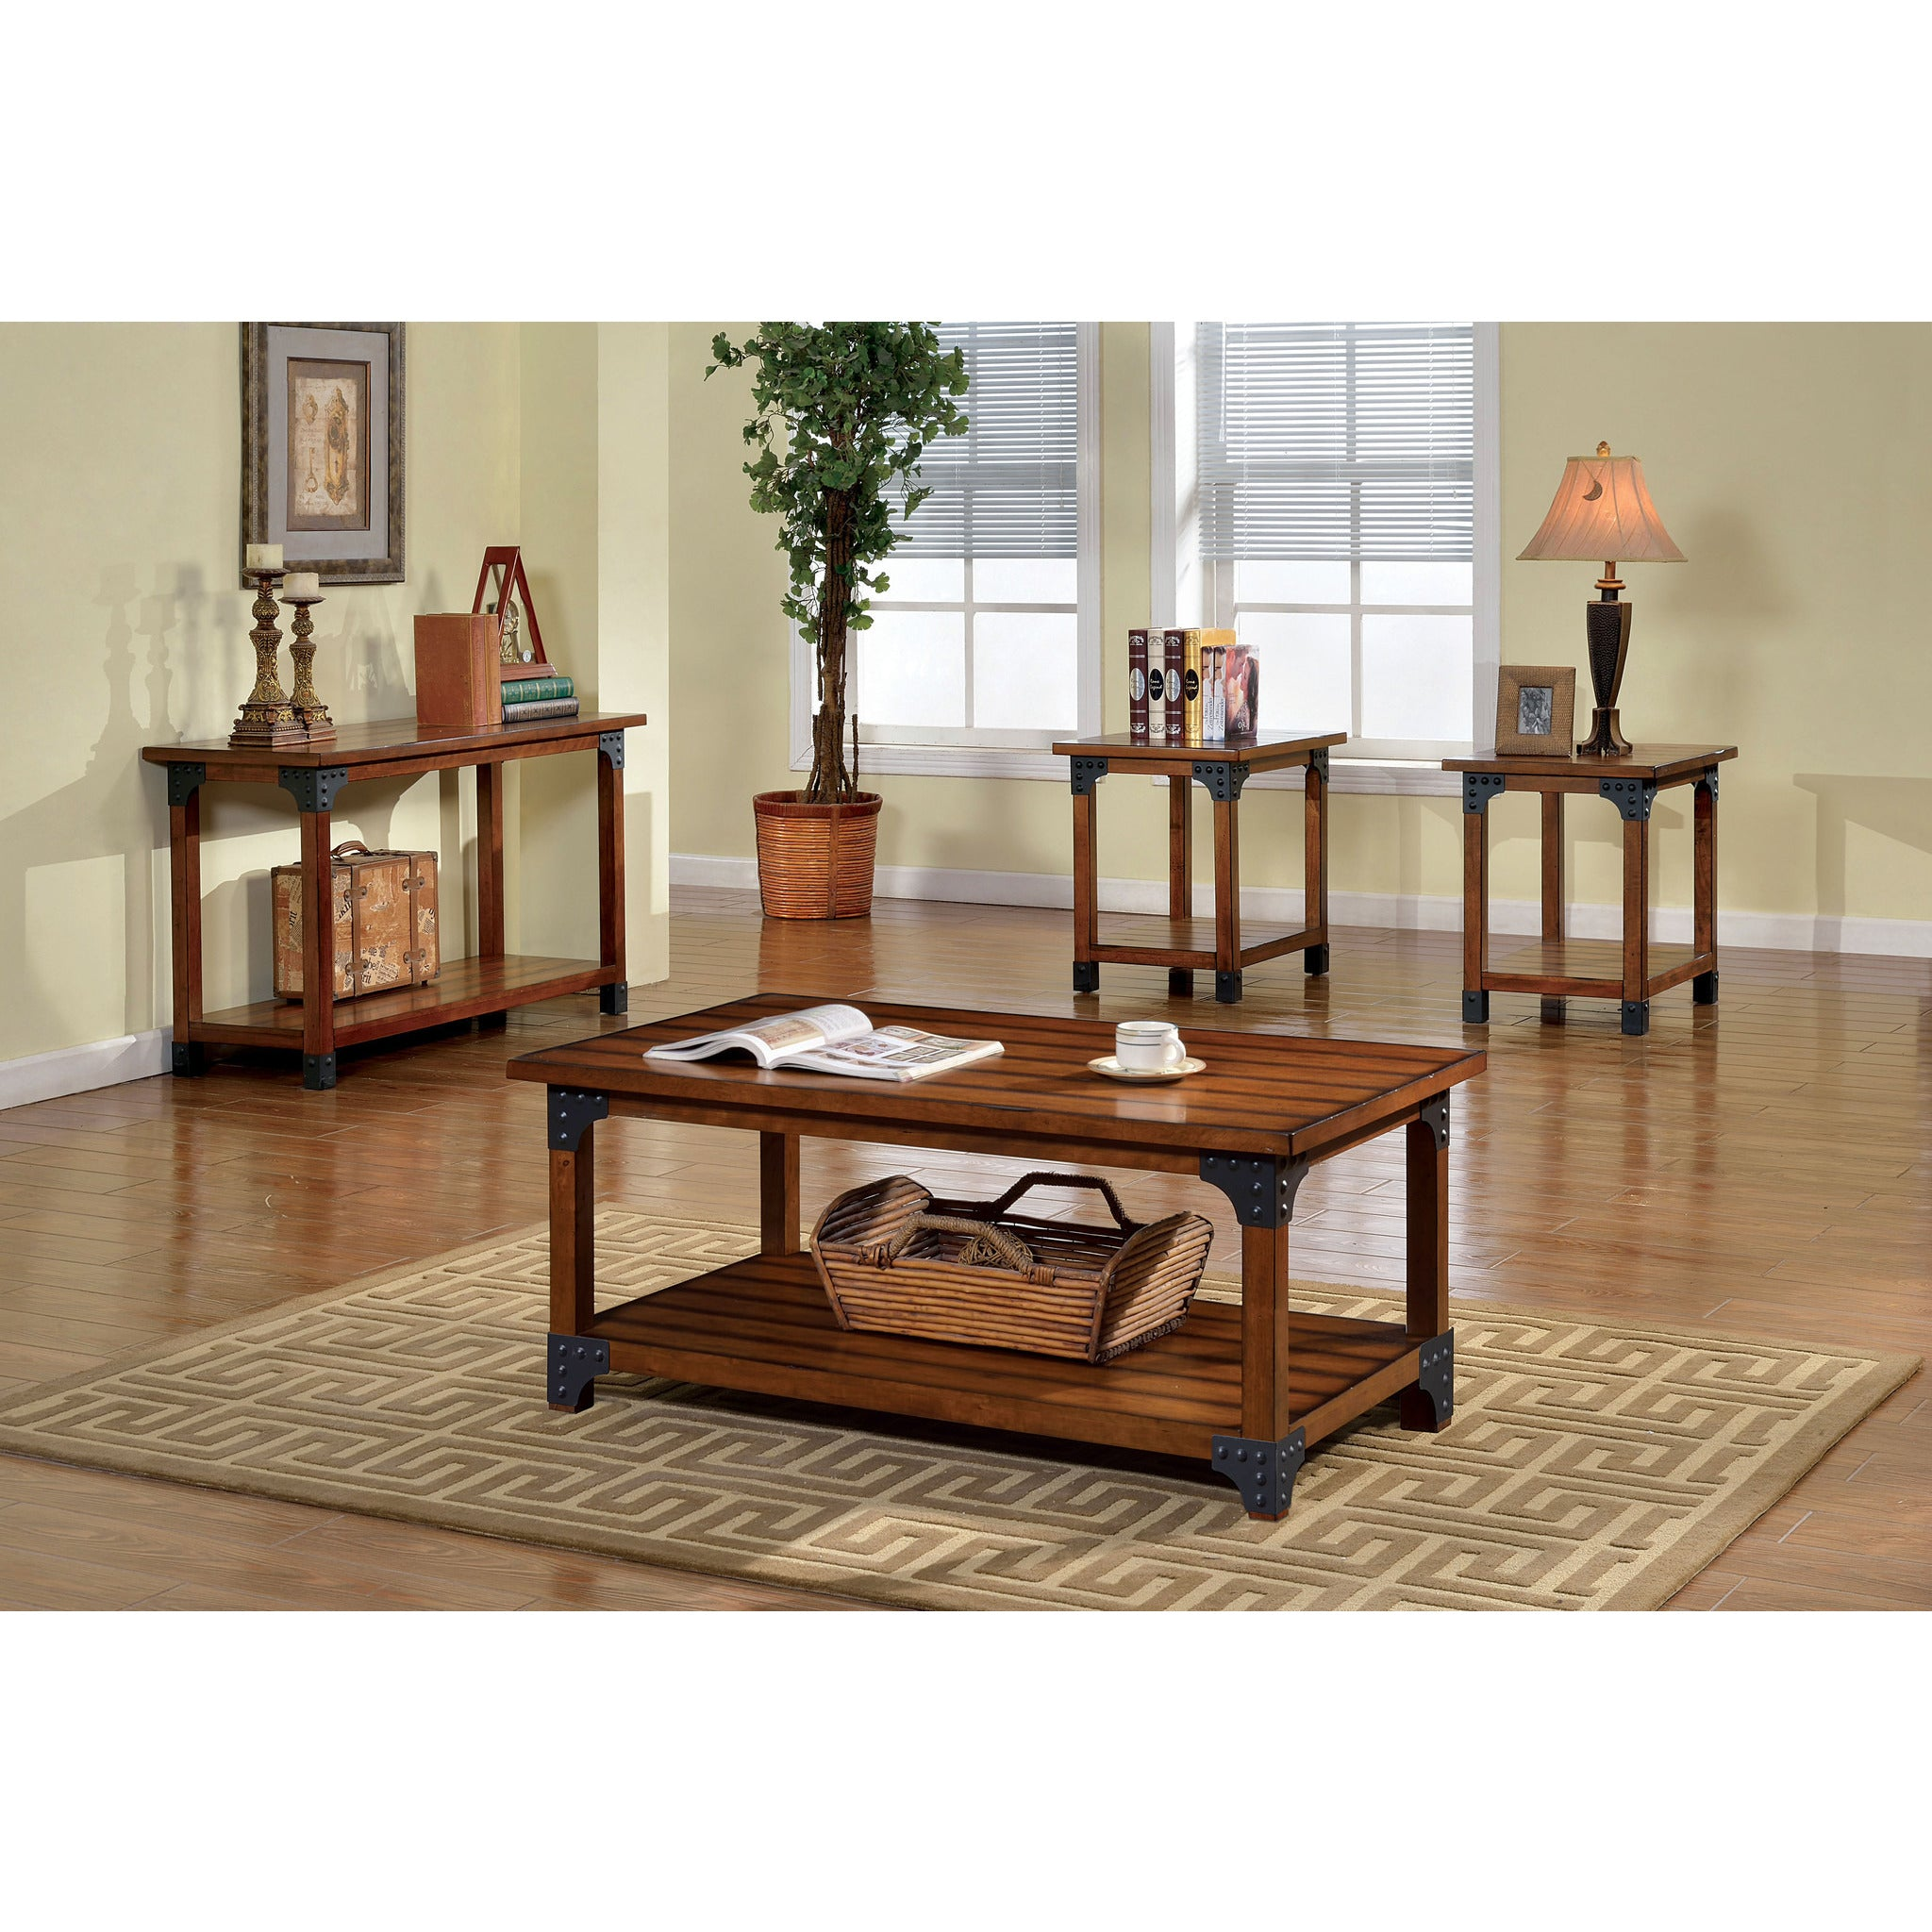 Millard Country Style 3 Piece Coffee and End Table Set in Antique